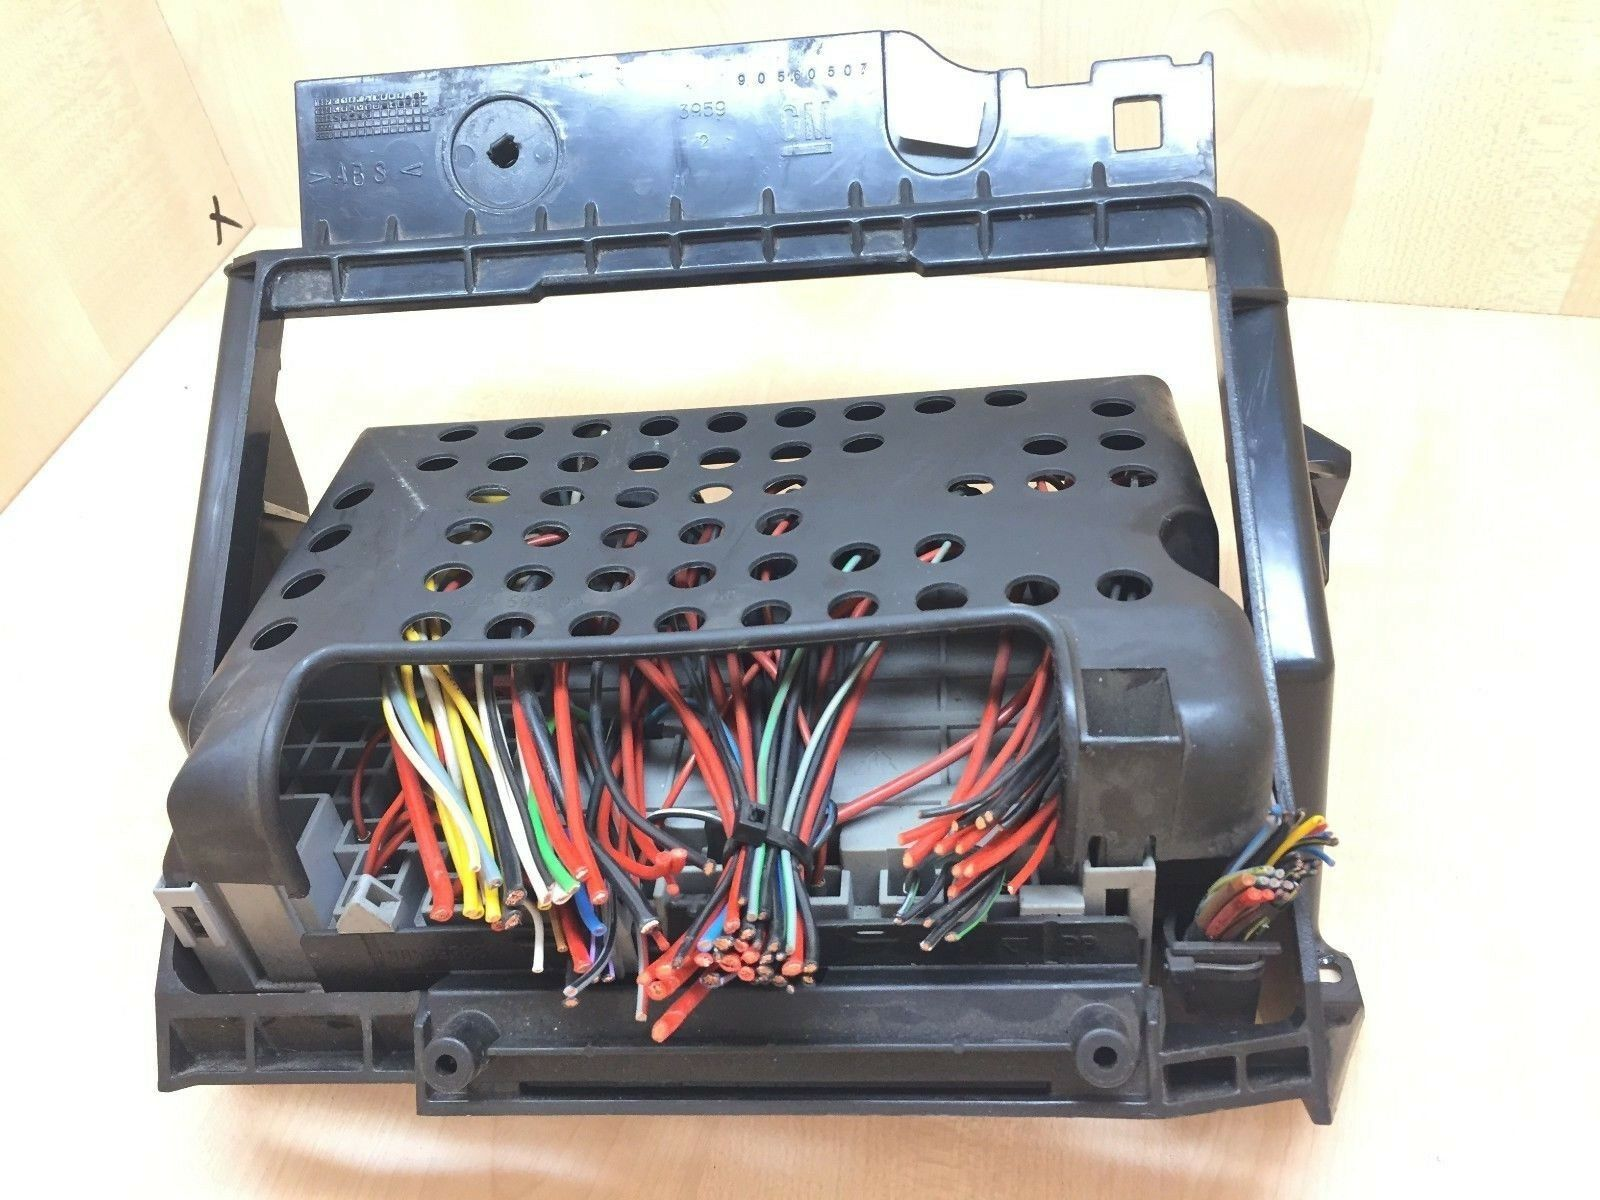 Vauxhall Opel Zafira A Astra G 2 0 Dti Fuse Box 90 589 965 90589966 Astra G  Fuse Box Location Where Is Fuse Box Astra G